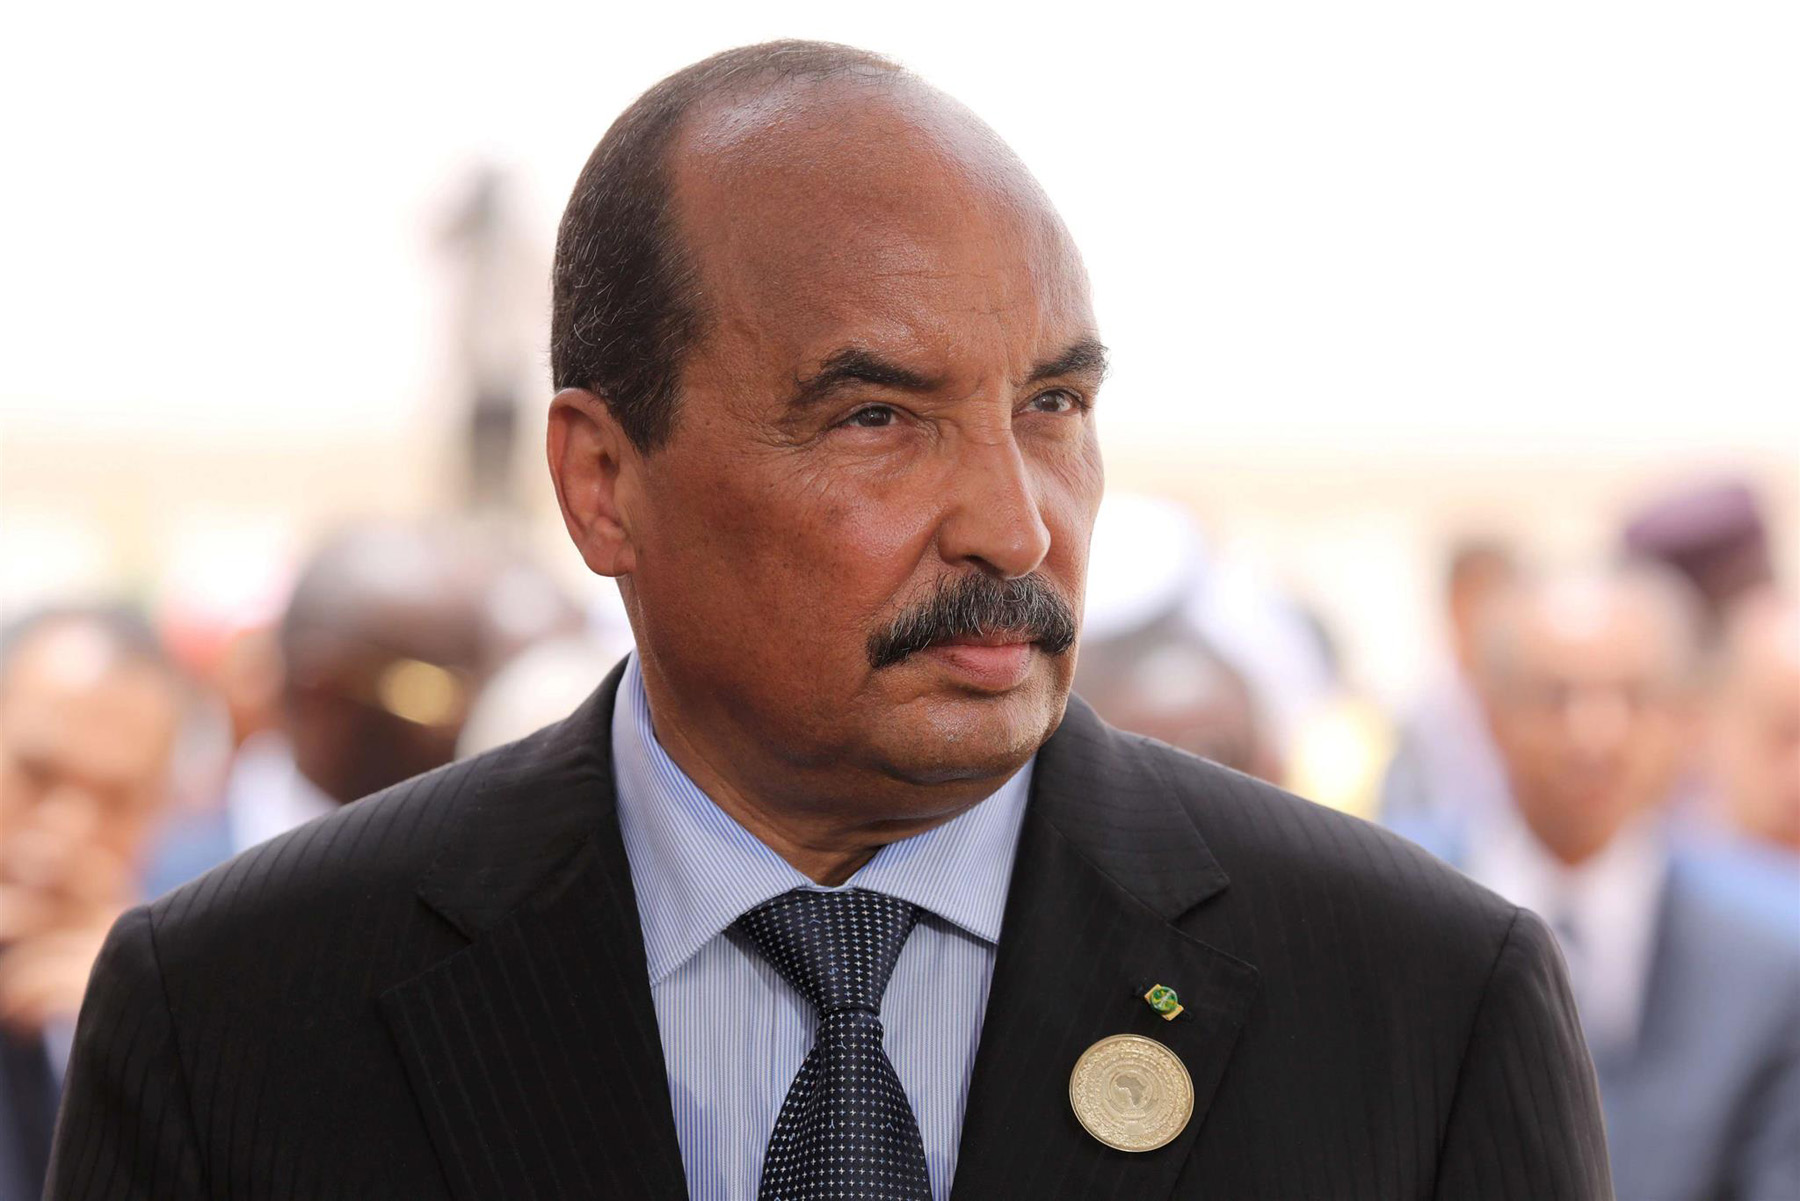 Mauritania's President Mohamed Ould Abdel Aziz waits for a visiting leader at Nouakchott Airport, last July. (Reuters)